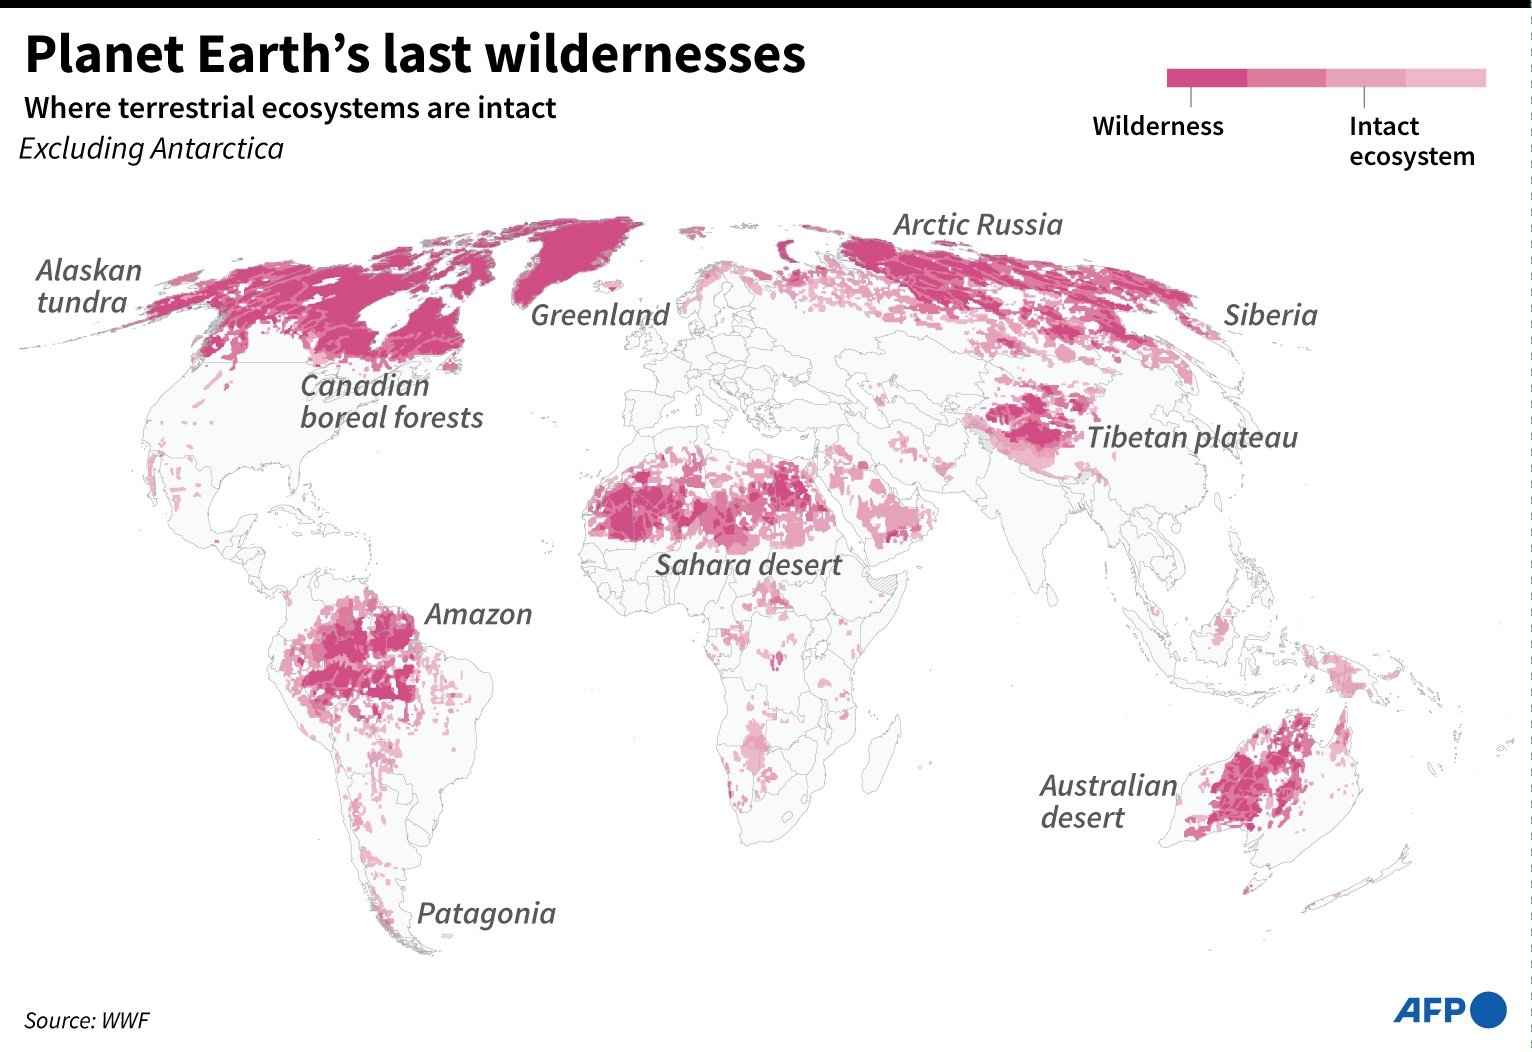 World map highlighting areas where terrestrial ecosystems remain intact.